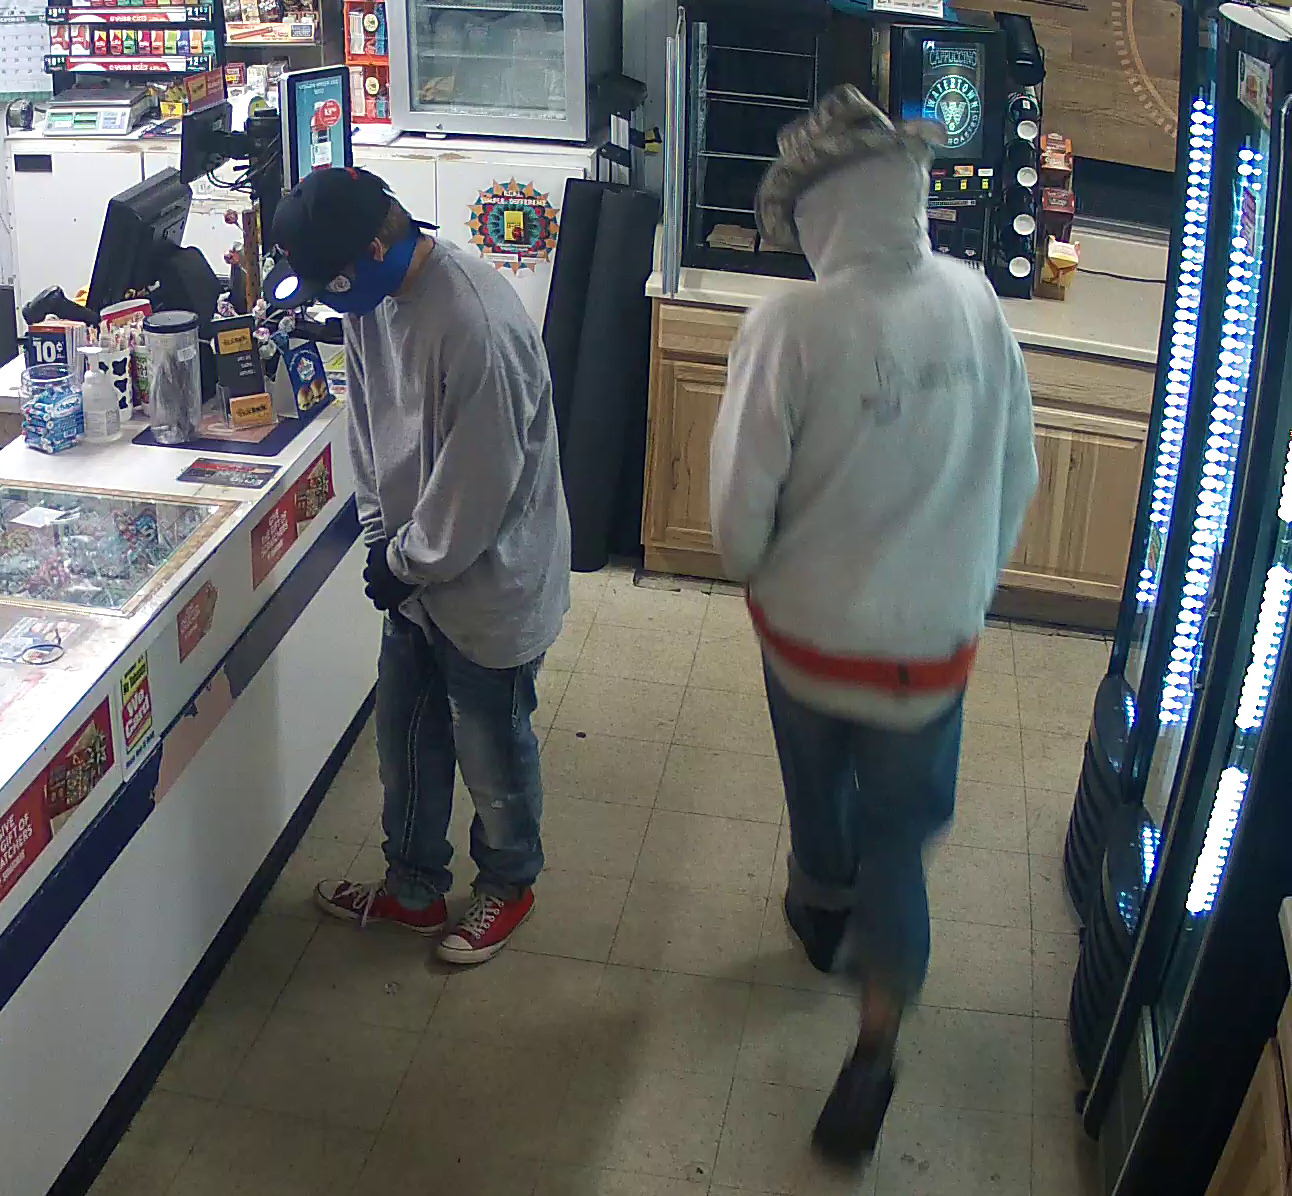 Two men rob store in McKinleyville. One is wearing a cowboy hat and sweatshirt, the other is wearing